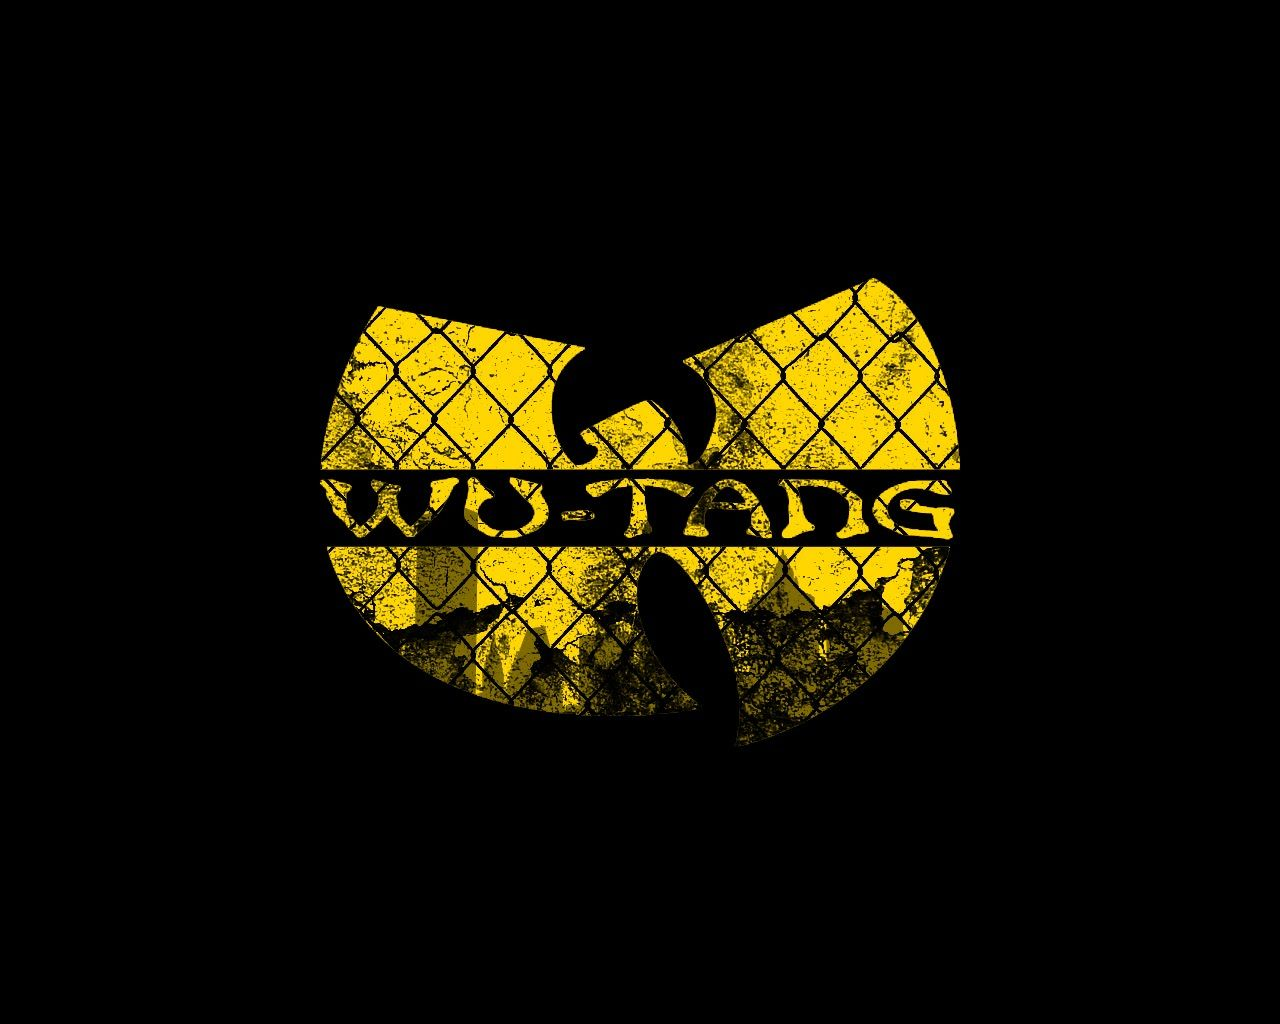 Wu Tang Clan Wallpaper Hd Hd Wallpapers In 2019 Wu Tang